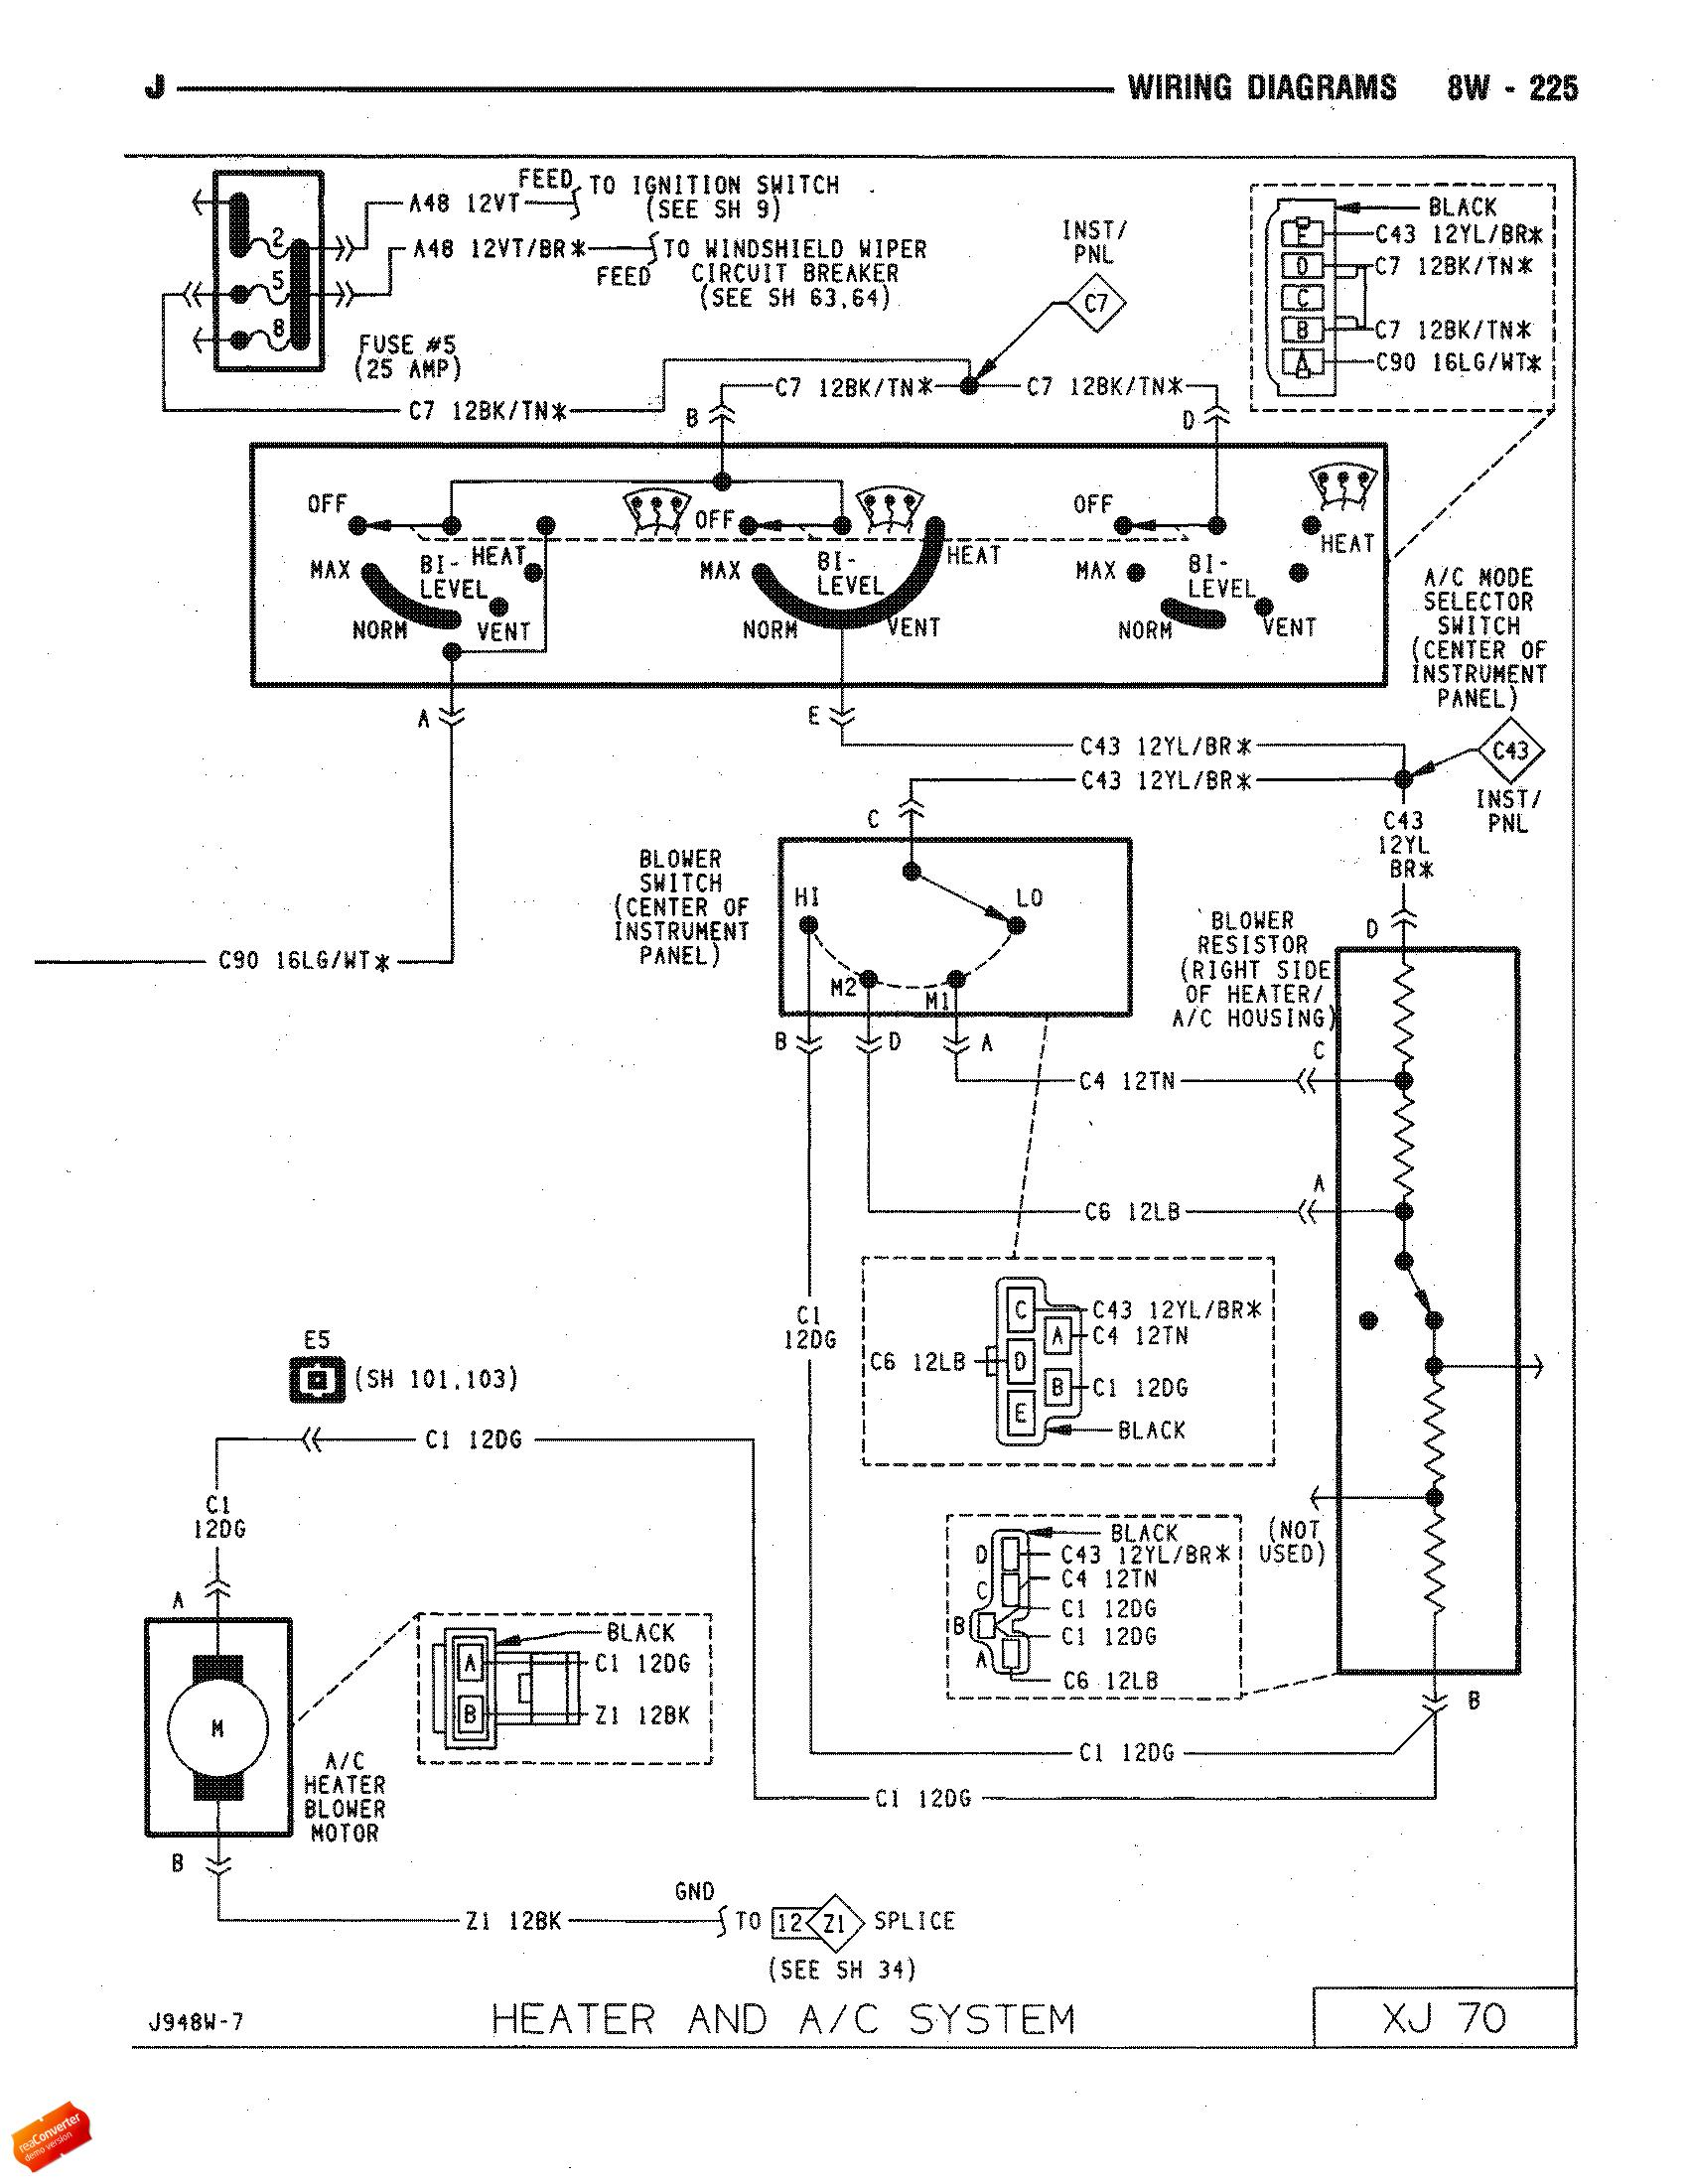 hight resolution of 1994 jeep blower motor wiring diagram